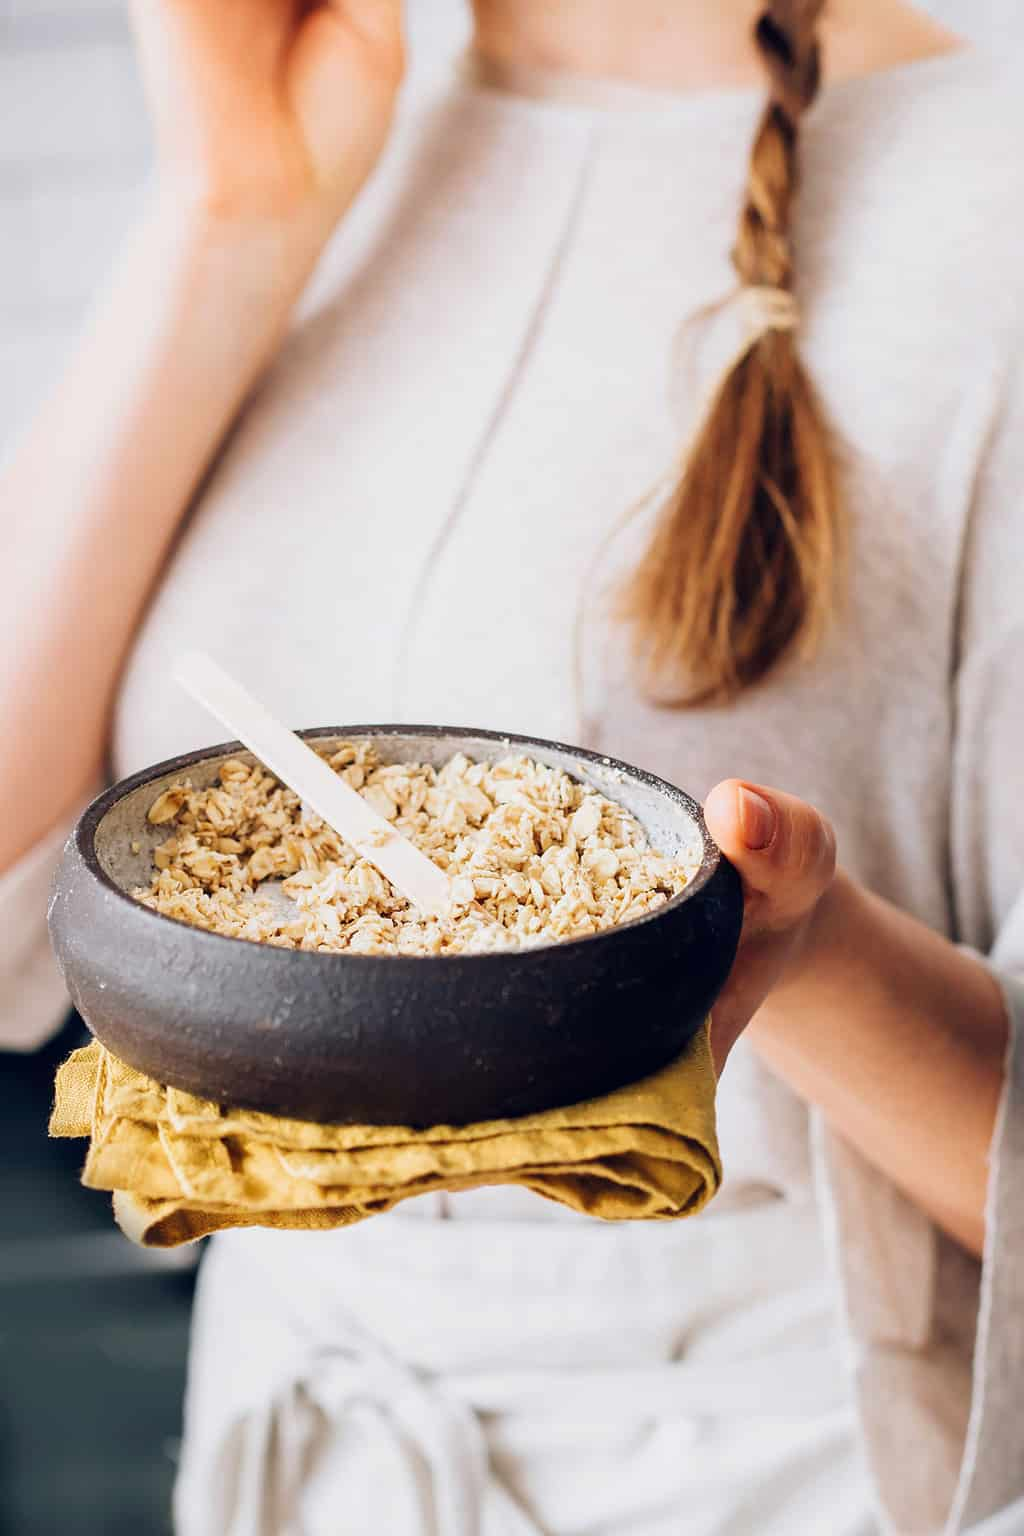 7 DIY Oatmeal Face Masks for Every Skin